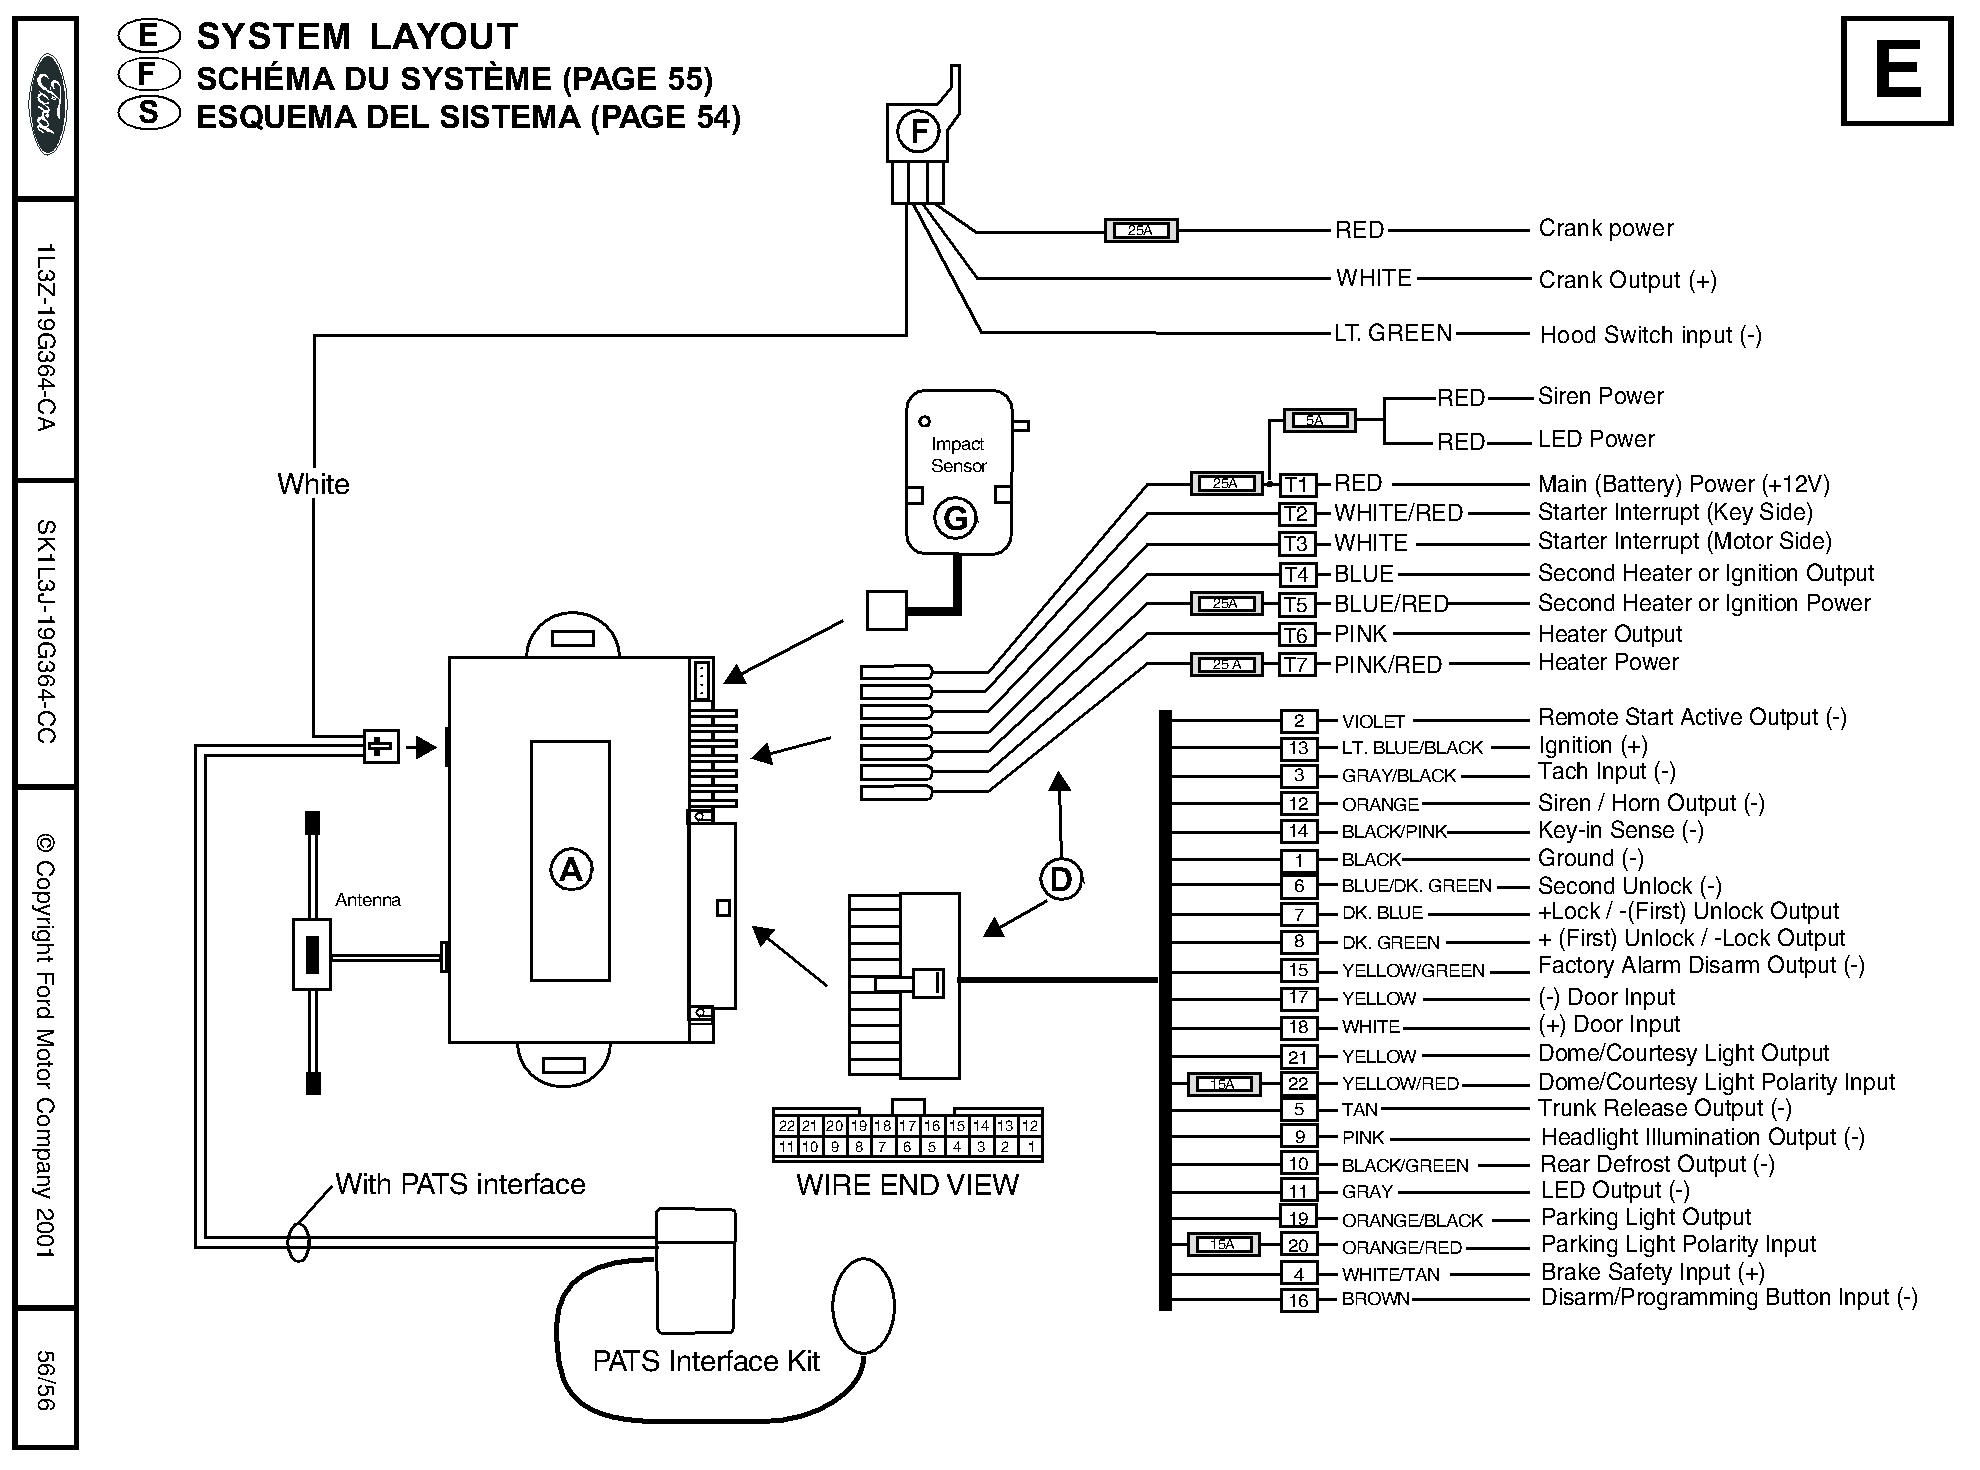 fordgoldstarter wiring diagram for 2001 saturn the wiring diagram readingrat net Burglar Alarm Wiring Diagram at bakdesigns.co